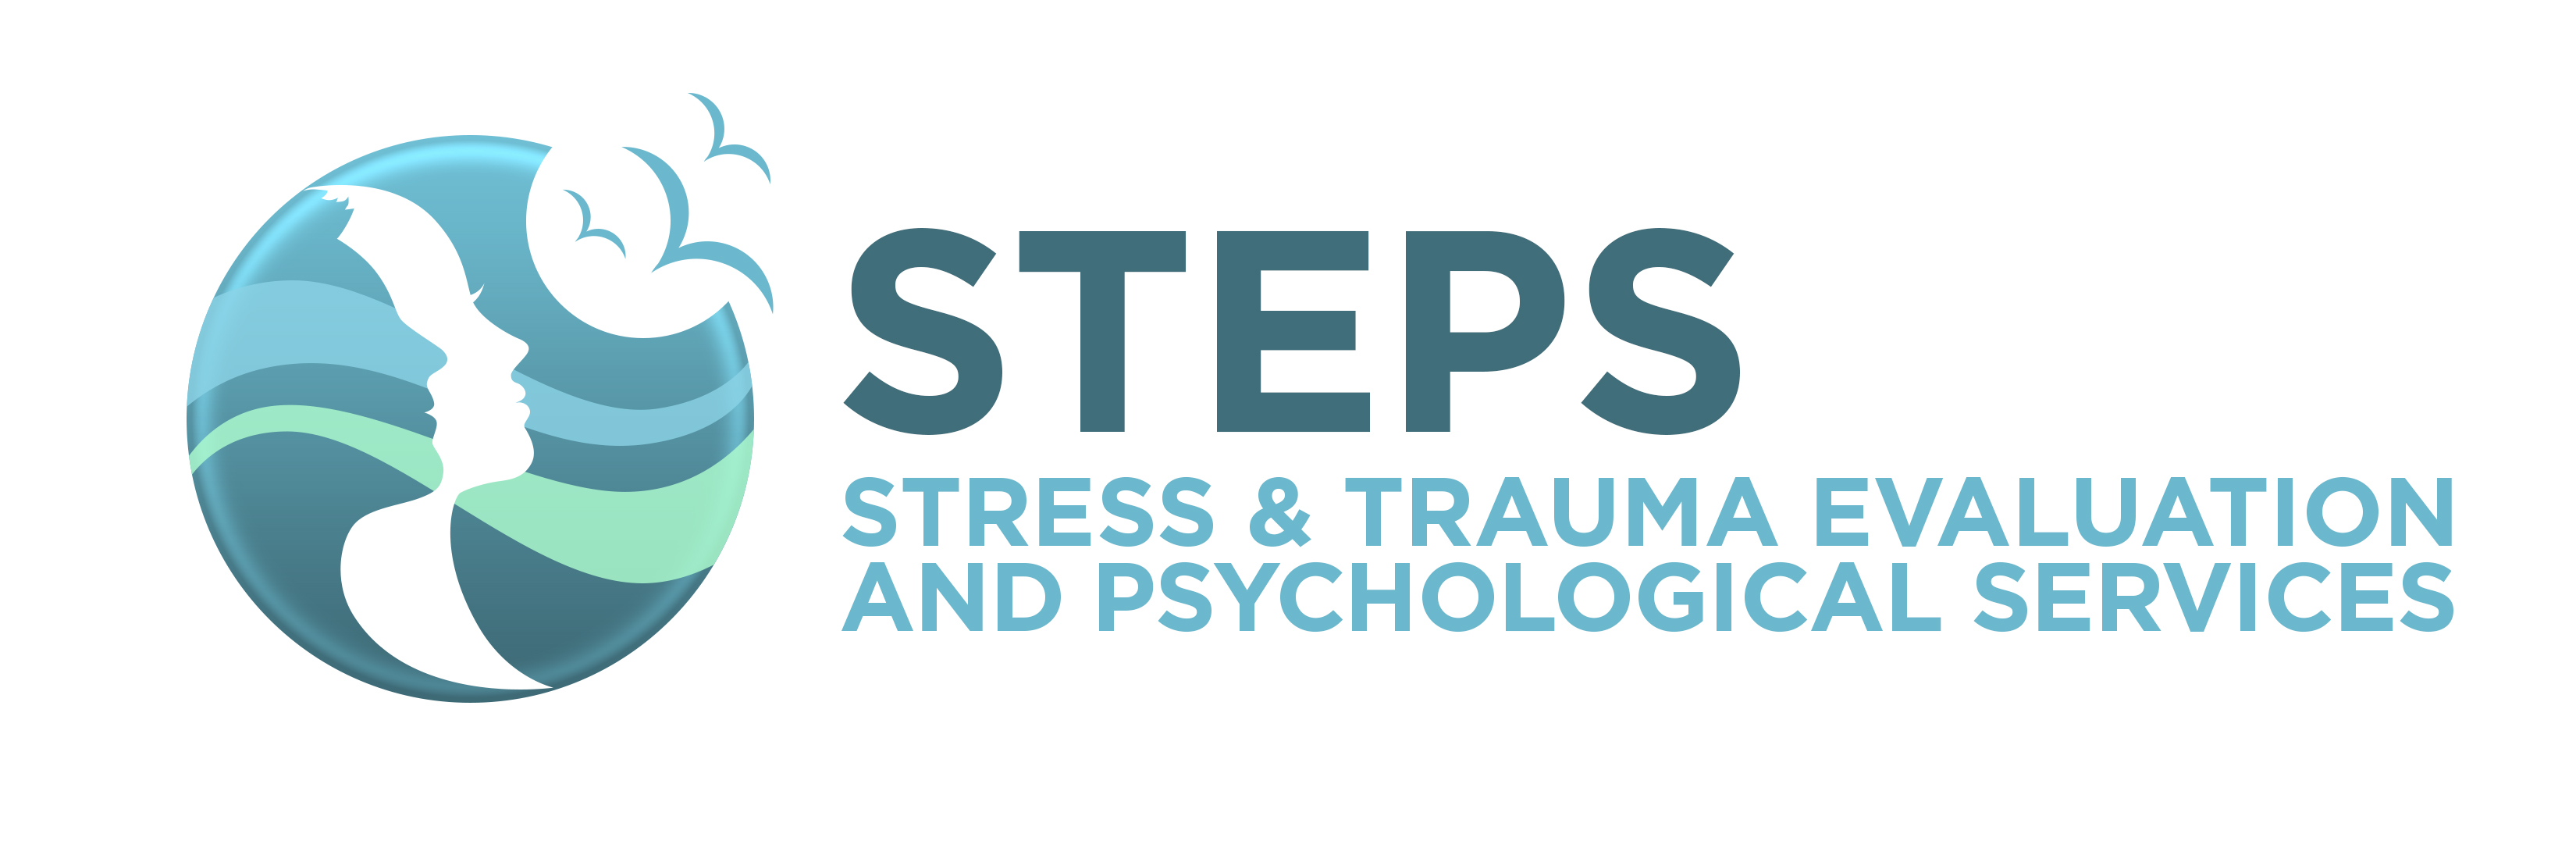 Stress & Trauma Evaluation And Psycological Services